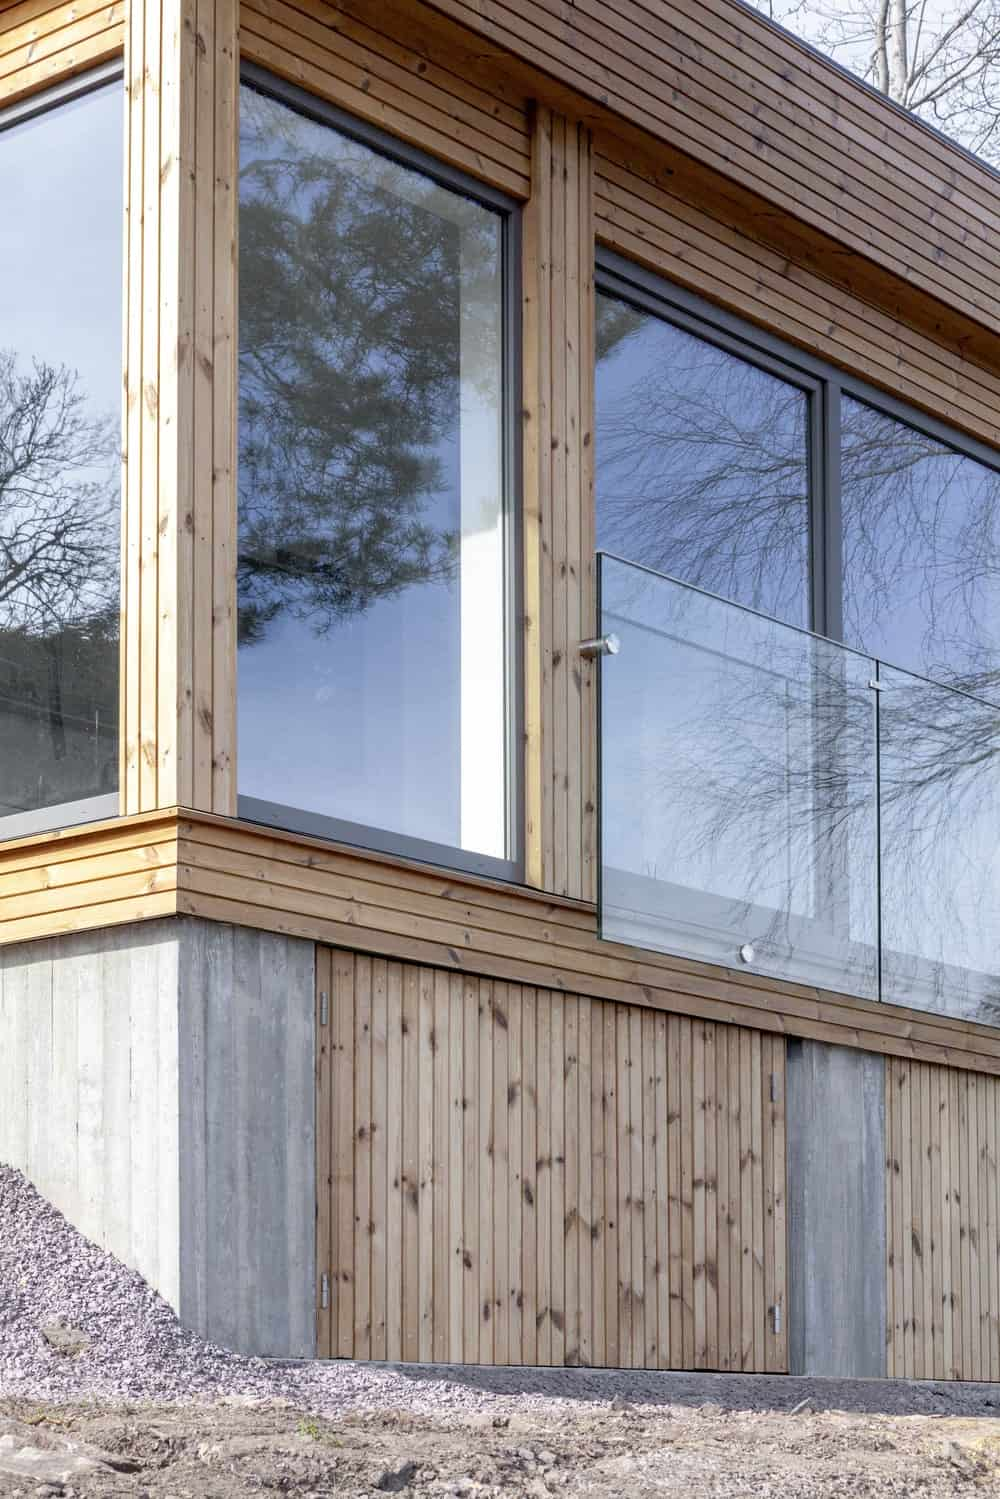 This is a close look at the exterior of the house with wooden shiplap elements, concrete elements and large glass walls and windows as well as railings.